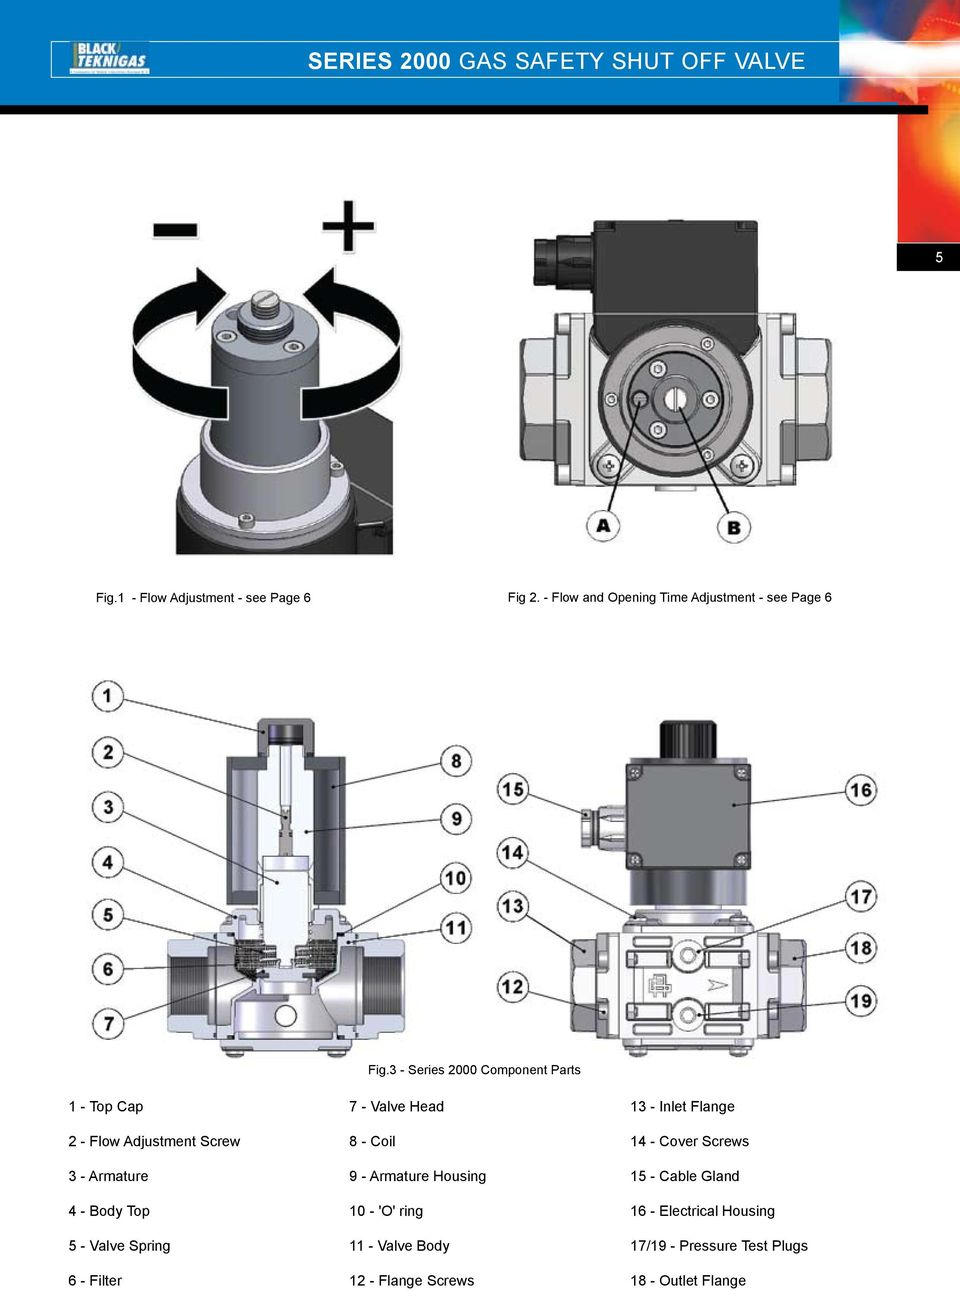 Spring 6 - Filter 7 - Valve Head 8 - Coil 9 - Armature Housing 10 - 'O' ring 11 - Valve Body 12 - Flange